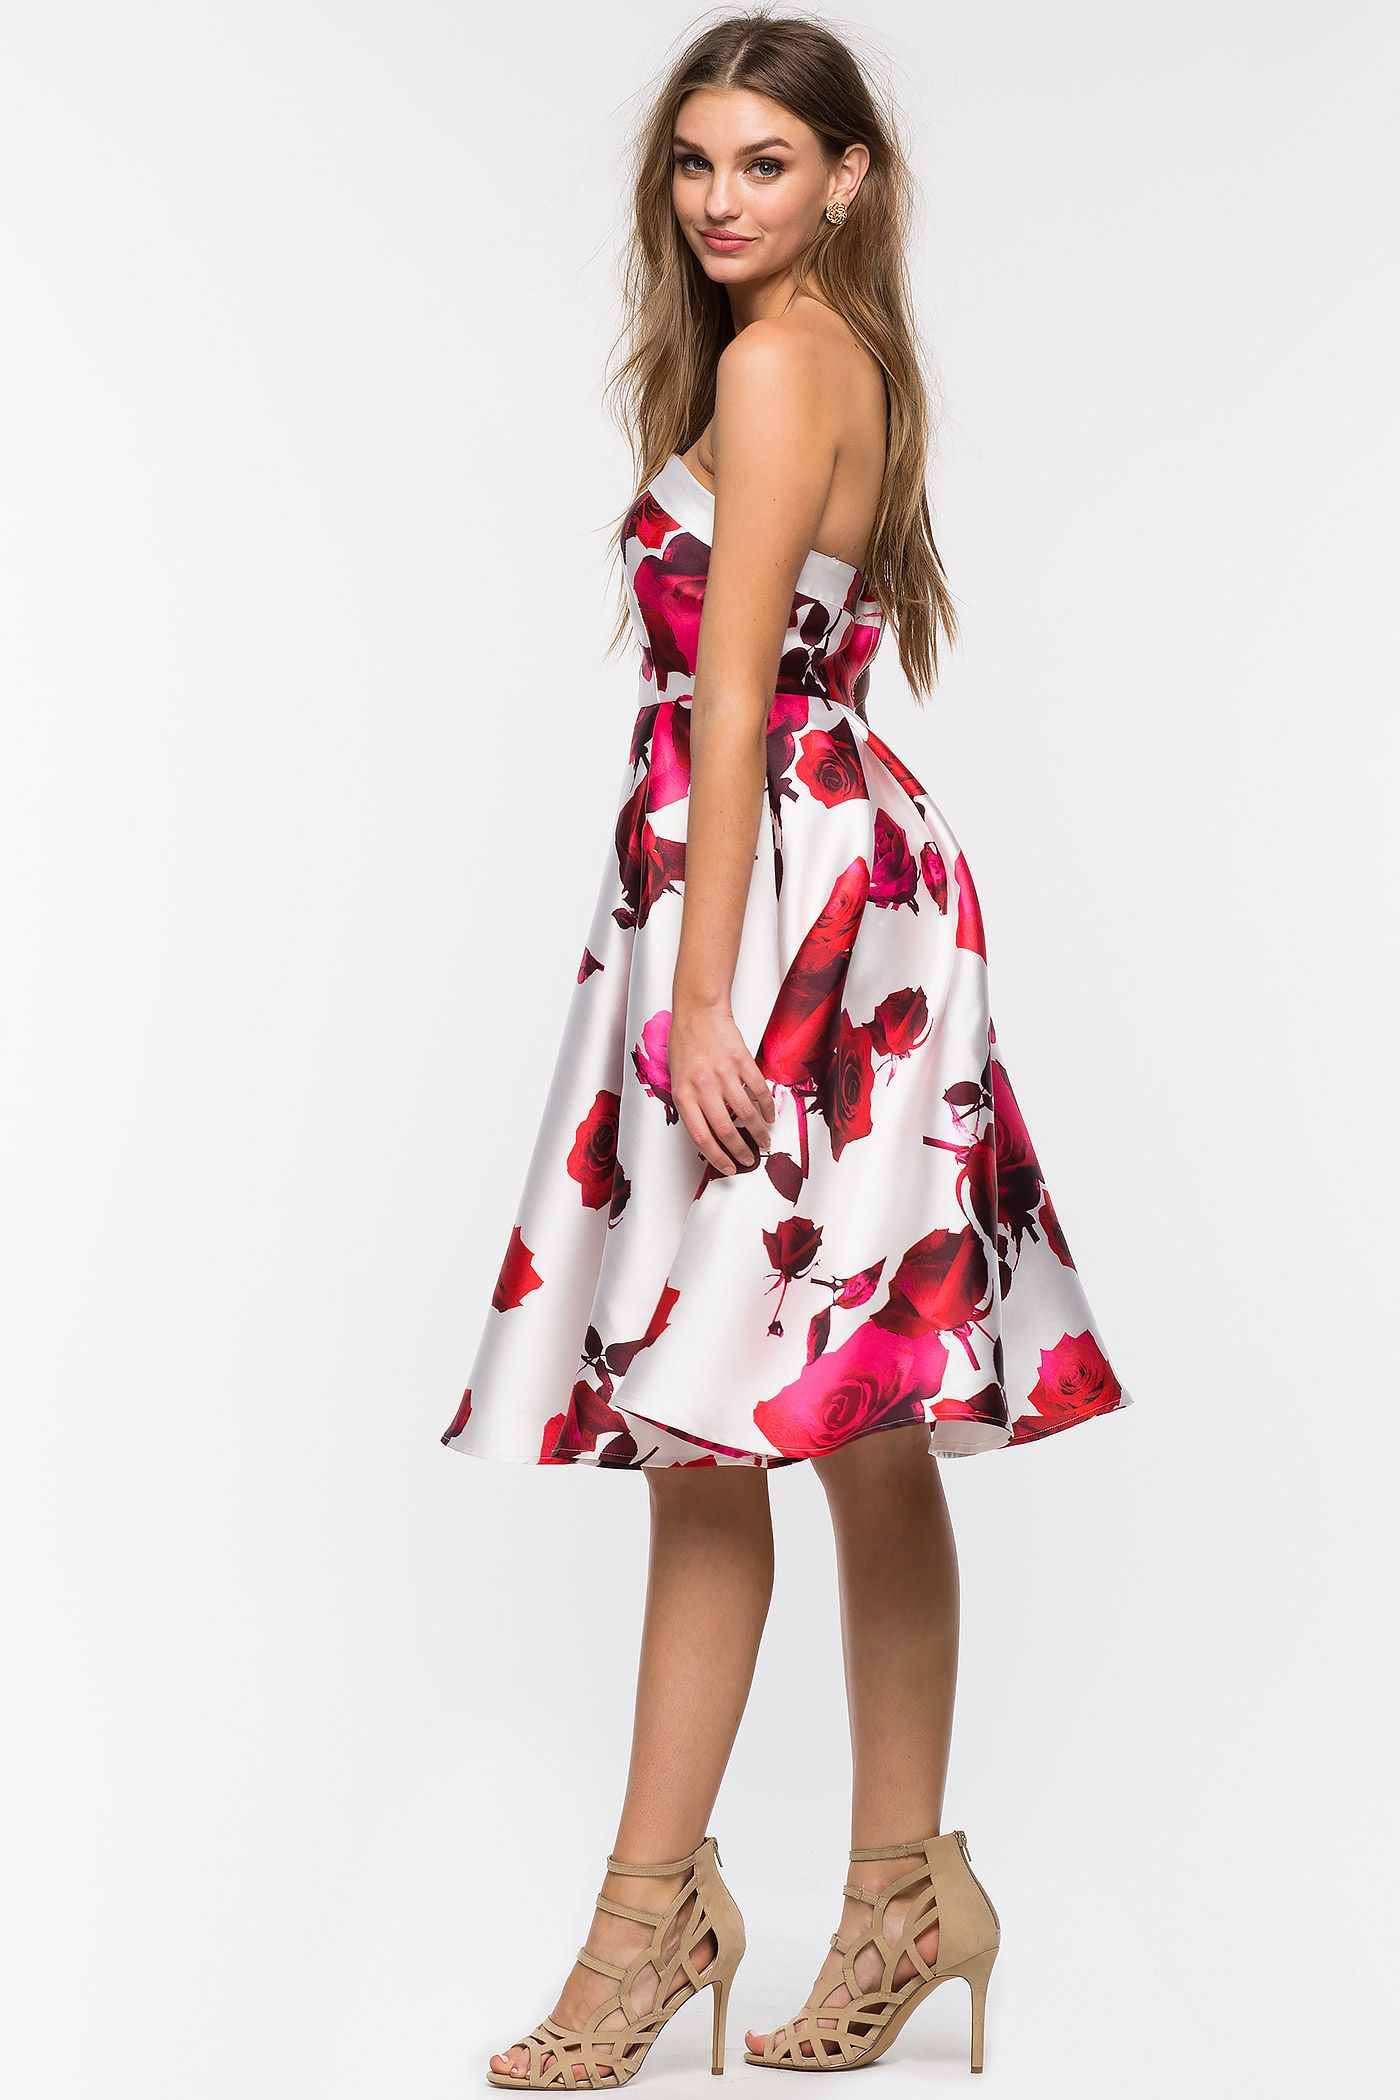 Women\'s Fit & Flare Dresses | Floral Frock Bustier Flare Dress | A ...